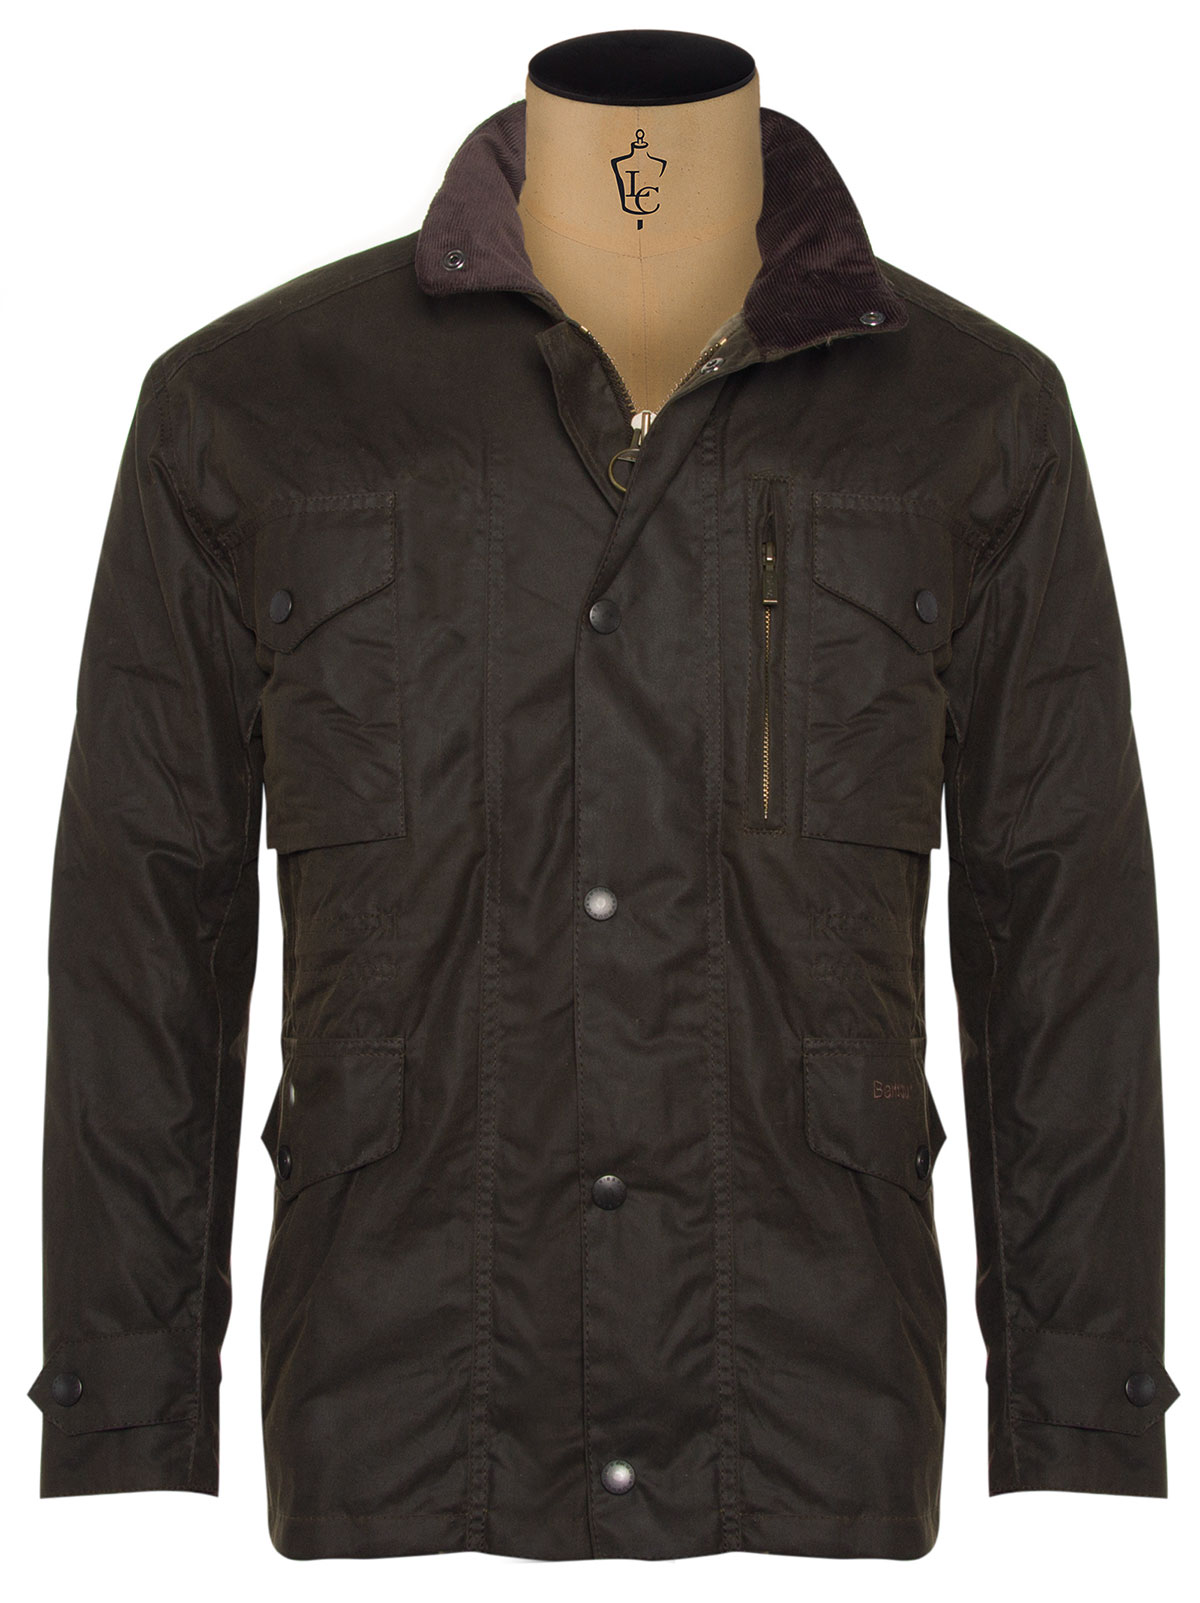 Barbour Sapper Waxed Jacket €299 at Louis Copeland